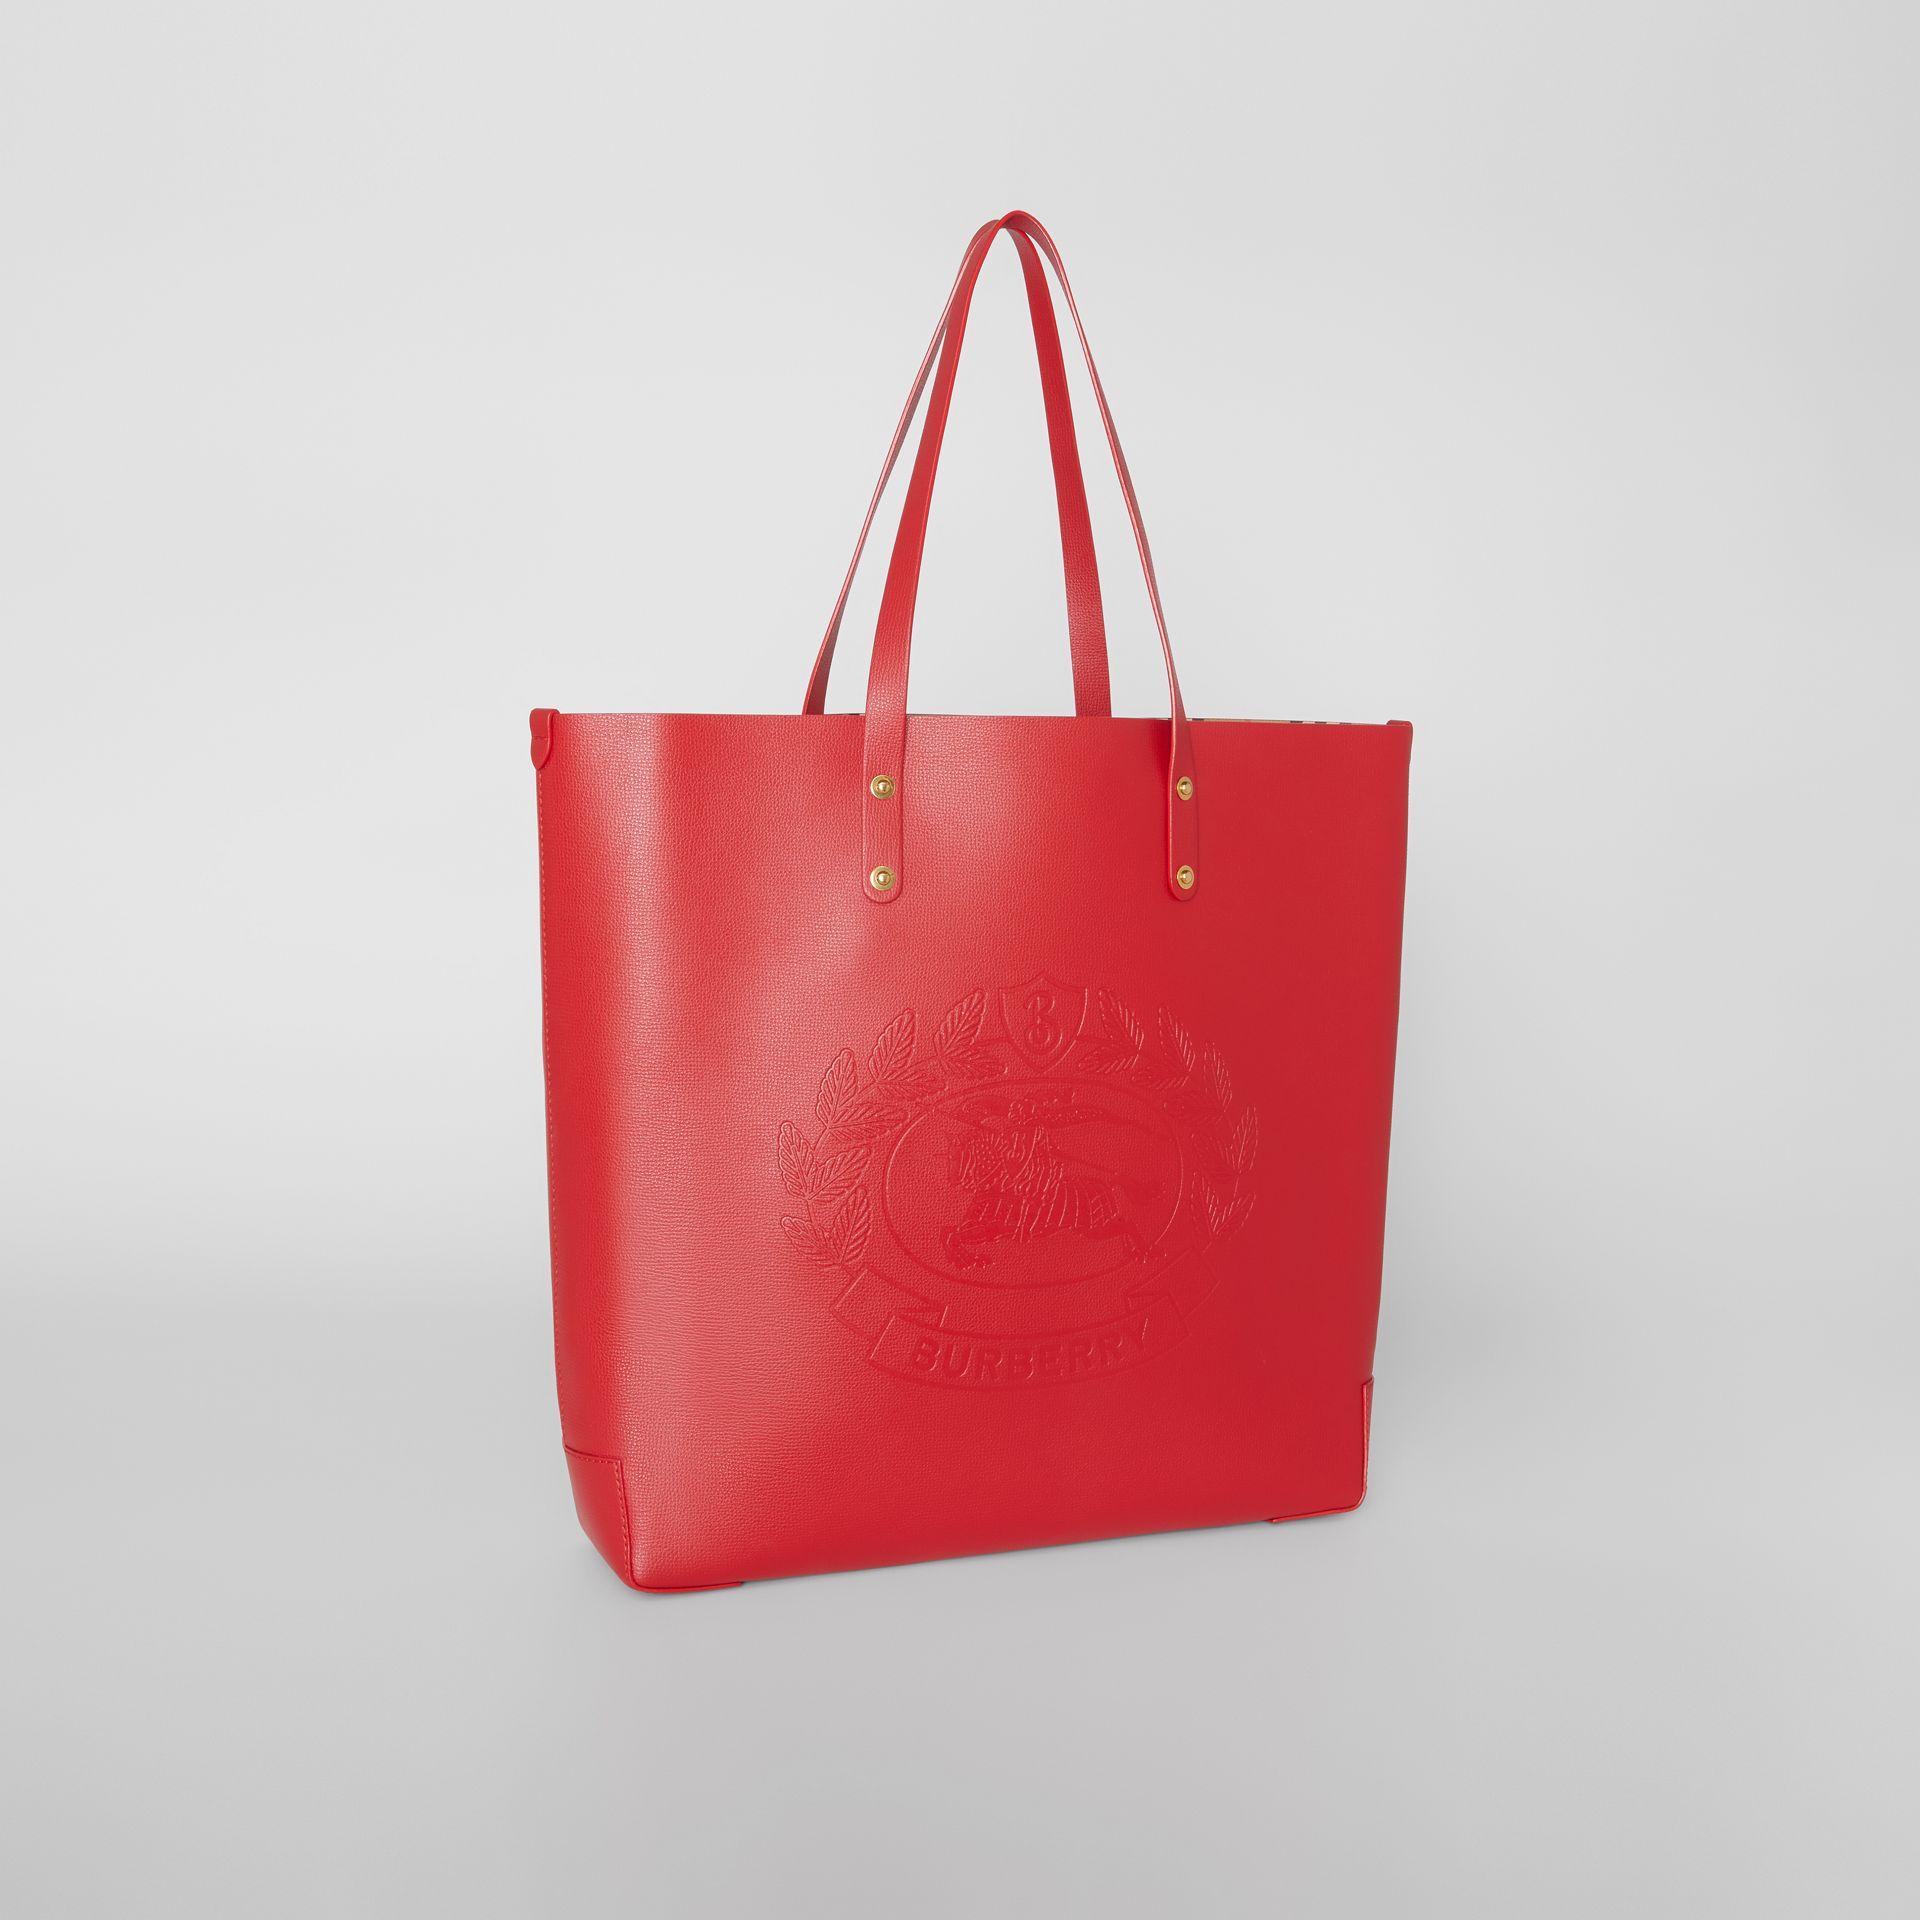 Grand sac cabas en cuir avec écusson (Rouge Rouille) - Femme | Burberry - photo de la galerie 6